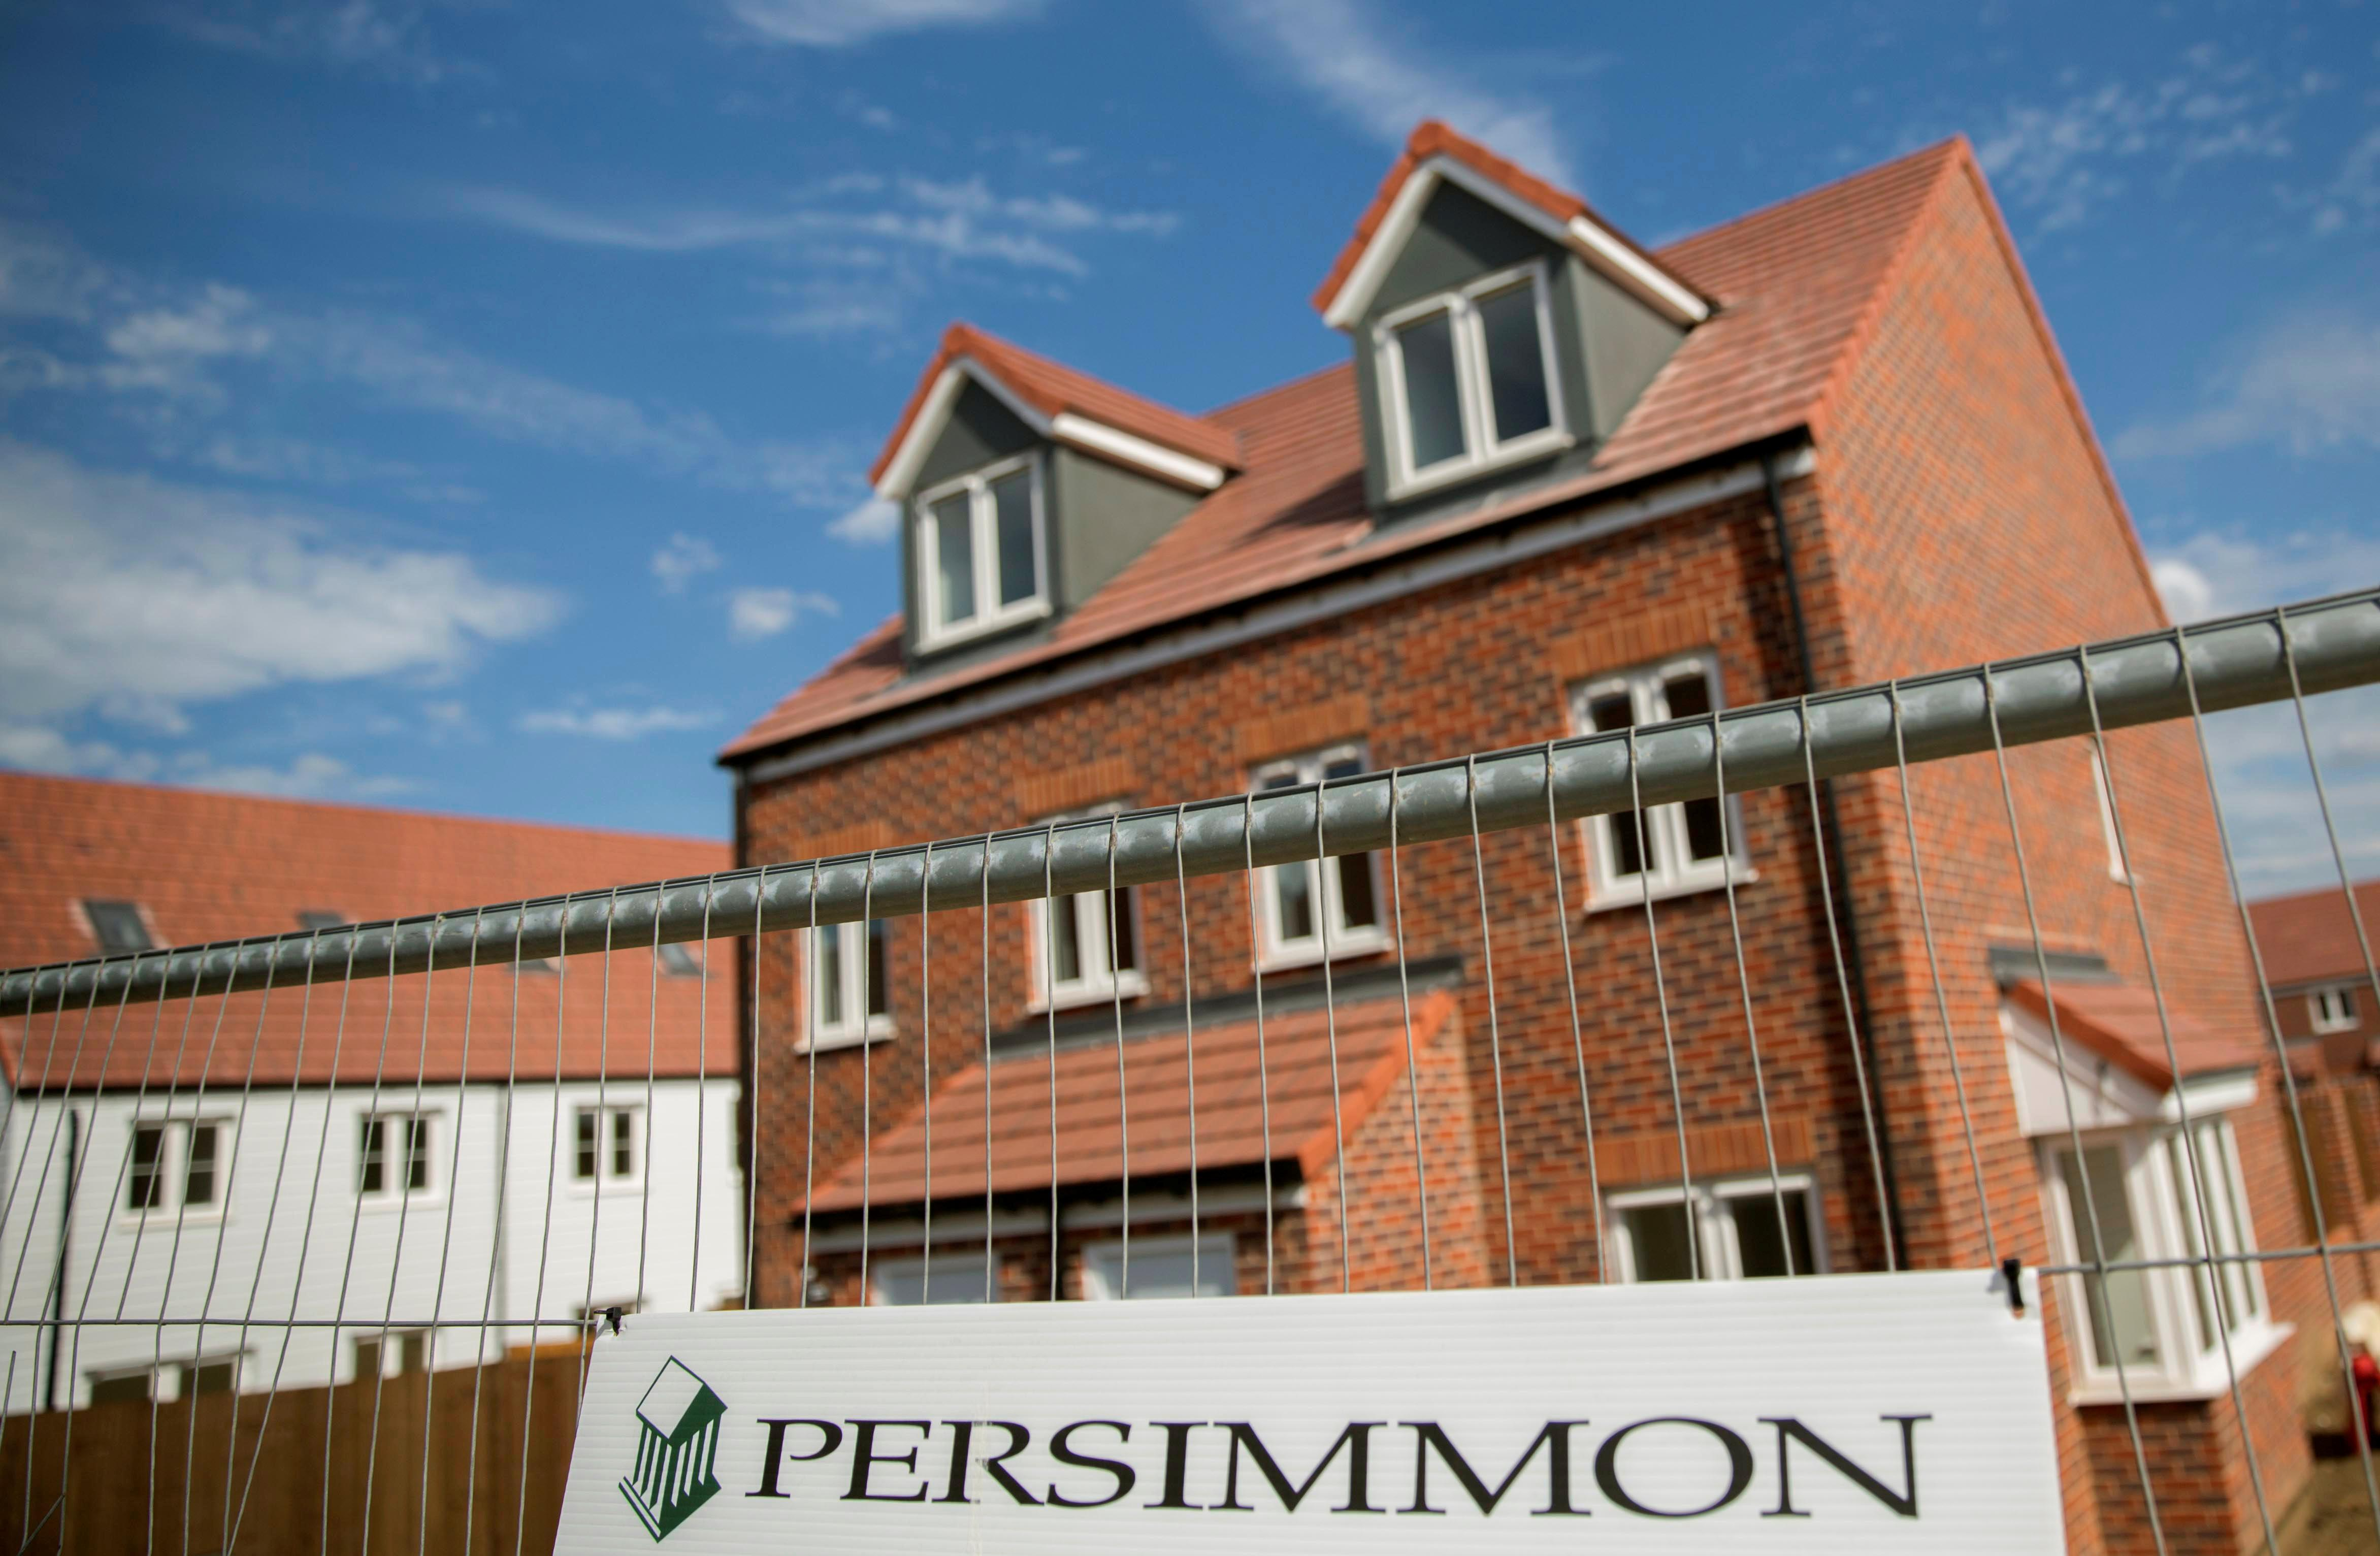 Persimmon profit drops as focus on quality leads to delivery delays